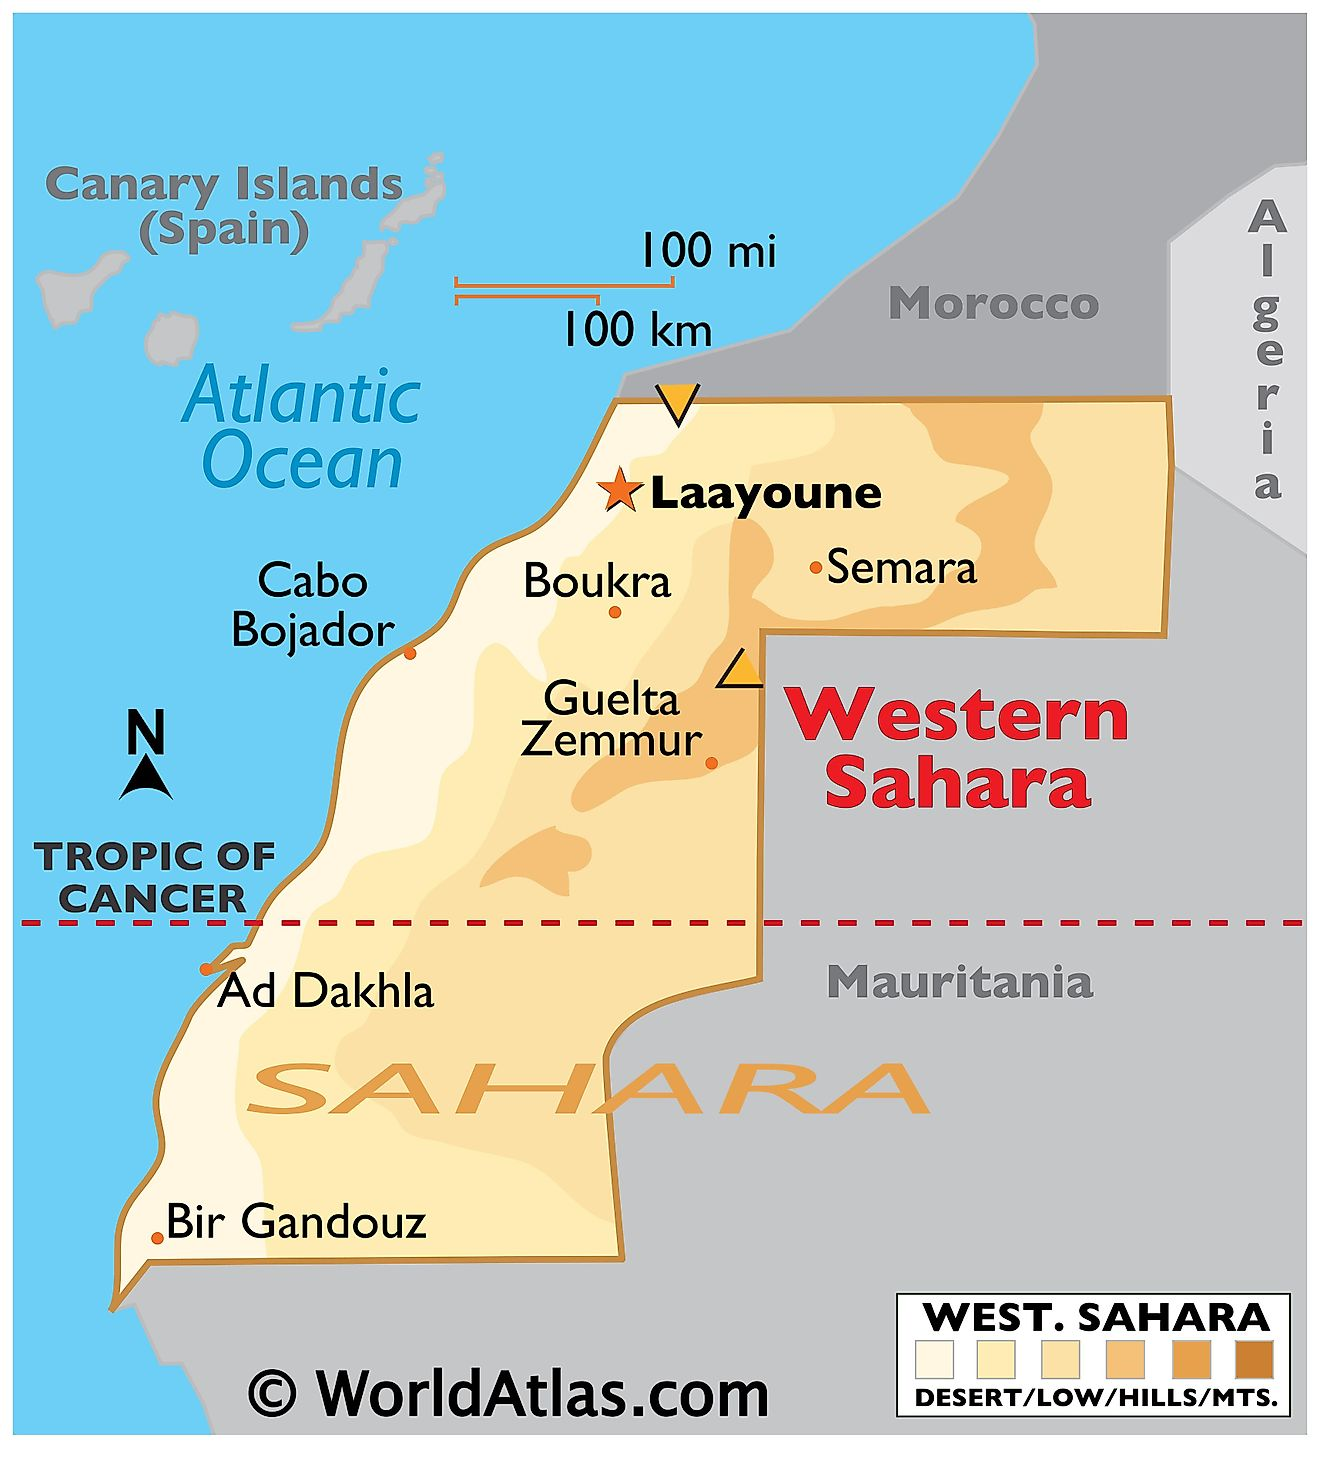 Physical Map of Western Sahara showing desert occupying most of its territory.